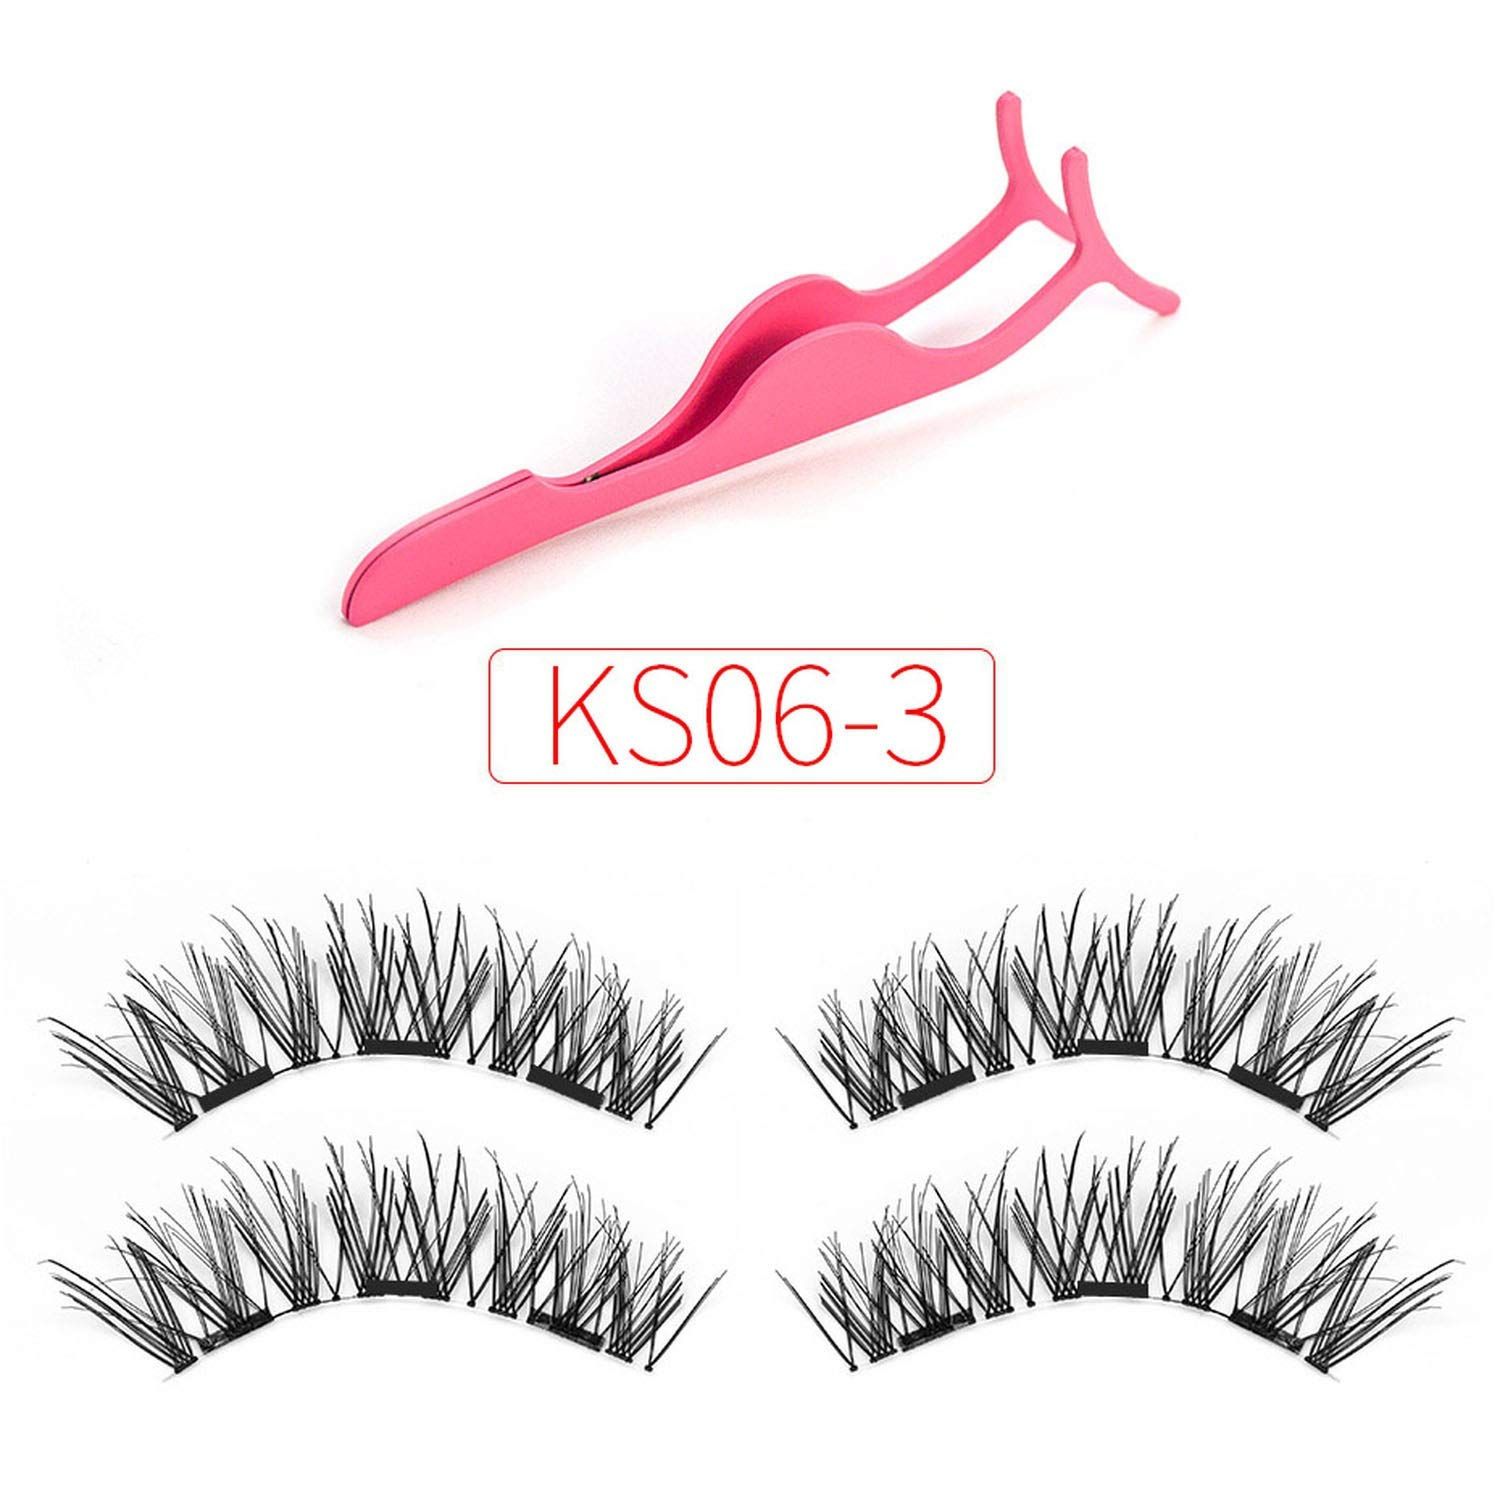 023519d5a22 Amazon.com : 3D Magnetic eyelashes with 3 magnets handmade natural false  eyelashes magnet lashes with gift makeup wiht tweezers, KS02-3 : Beauty